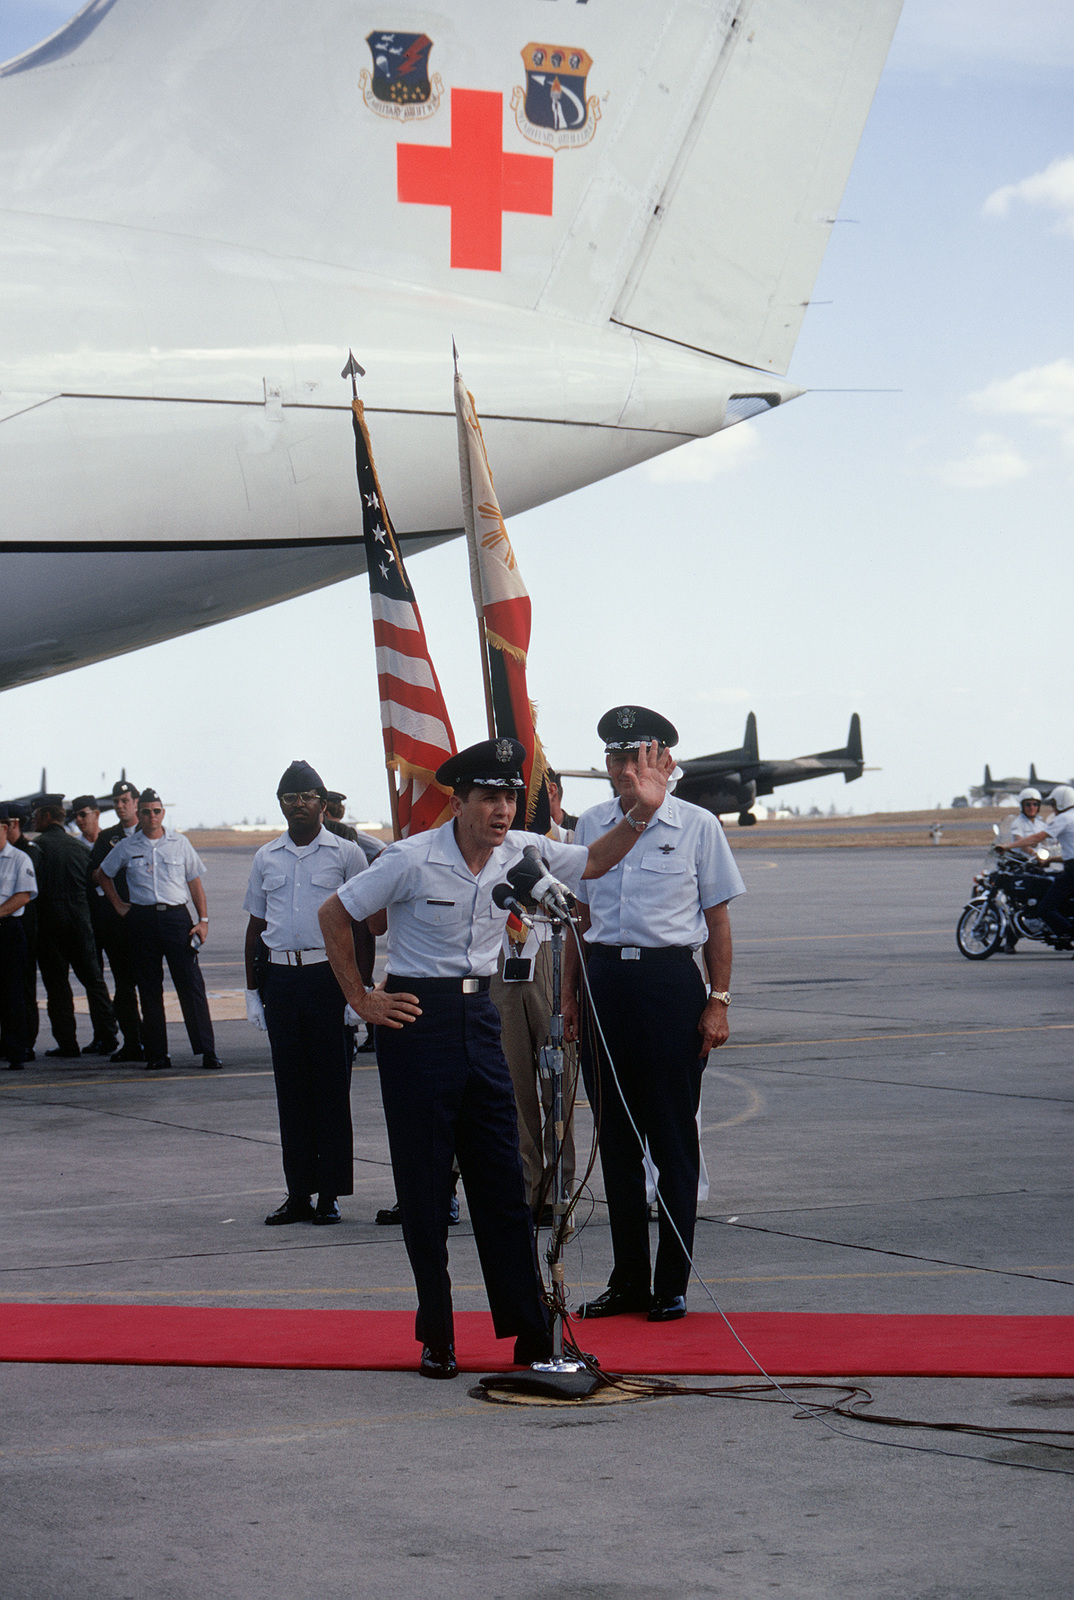 Former POW and U.S. Air Force COL Robinson Risner, at the microphone, waves and thanks the crowd and press prior to boarding the waiting C-141 Starlifter for the flight to the states. Standing behind COL Risner is LGEN William G. Moore, Commander 13th Air Force. COL Risner was captured on 16 Sep 65 and released by the North Vietnamese in Hanoi on 12 Feb 73